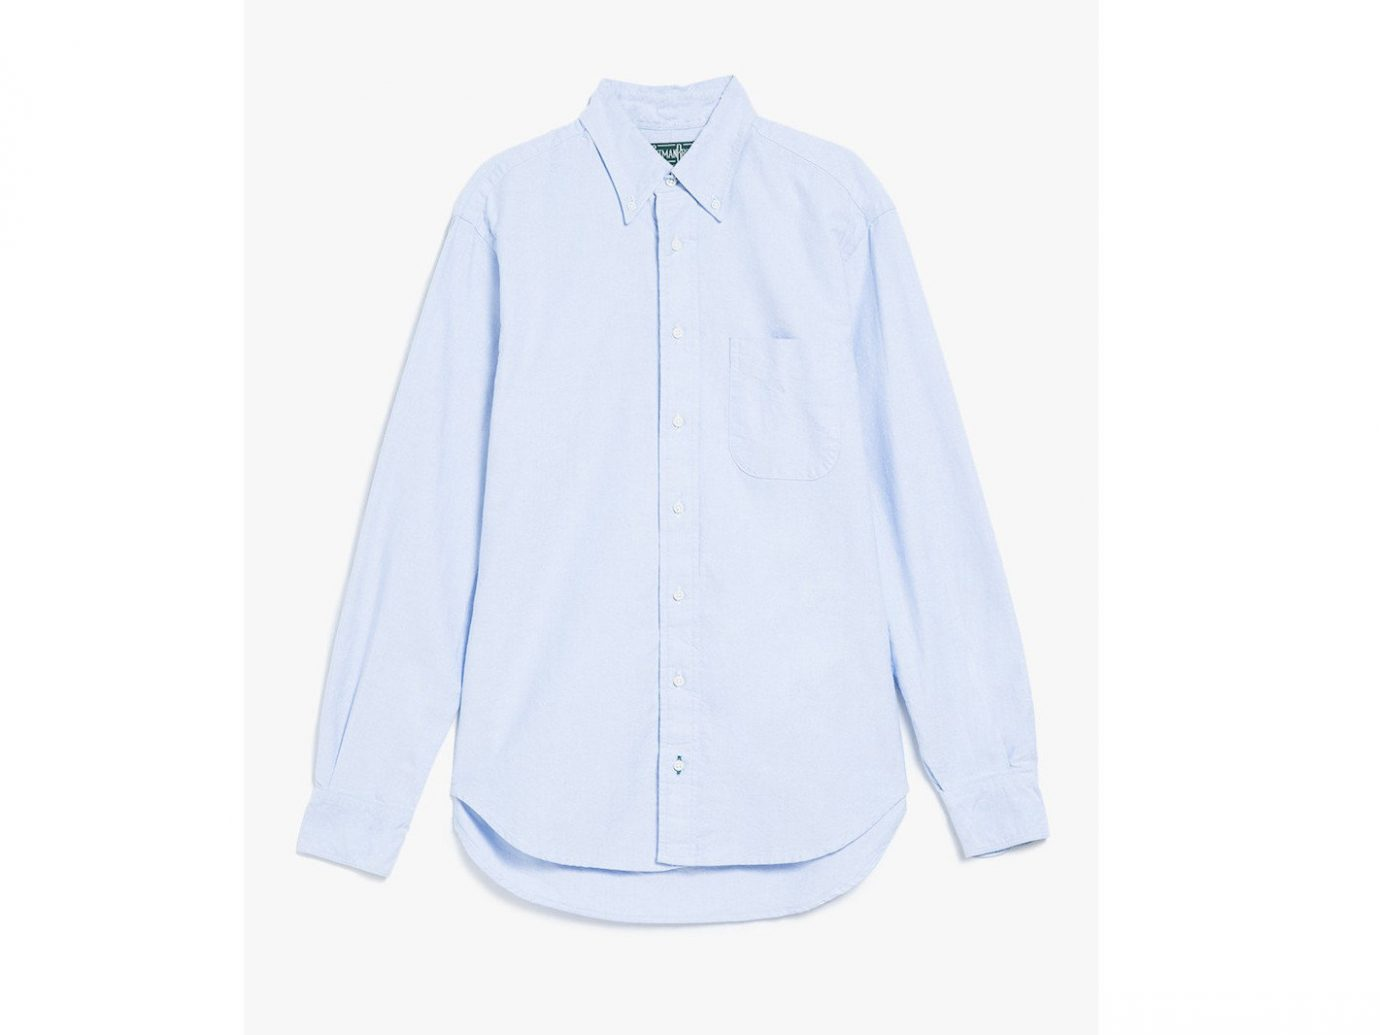 Style + Design Travel Shop white clothing person man sleeve wearing collar shirt button blouse product dress shirt dressed posing